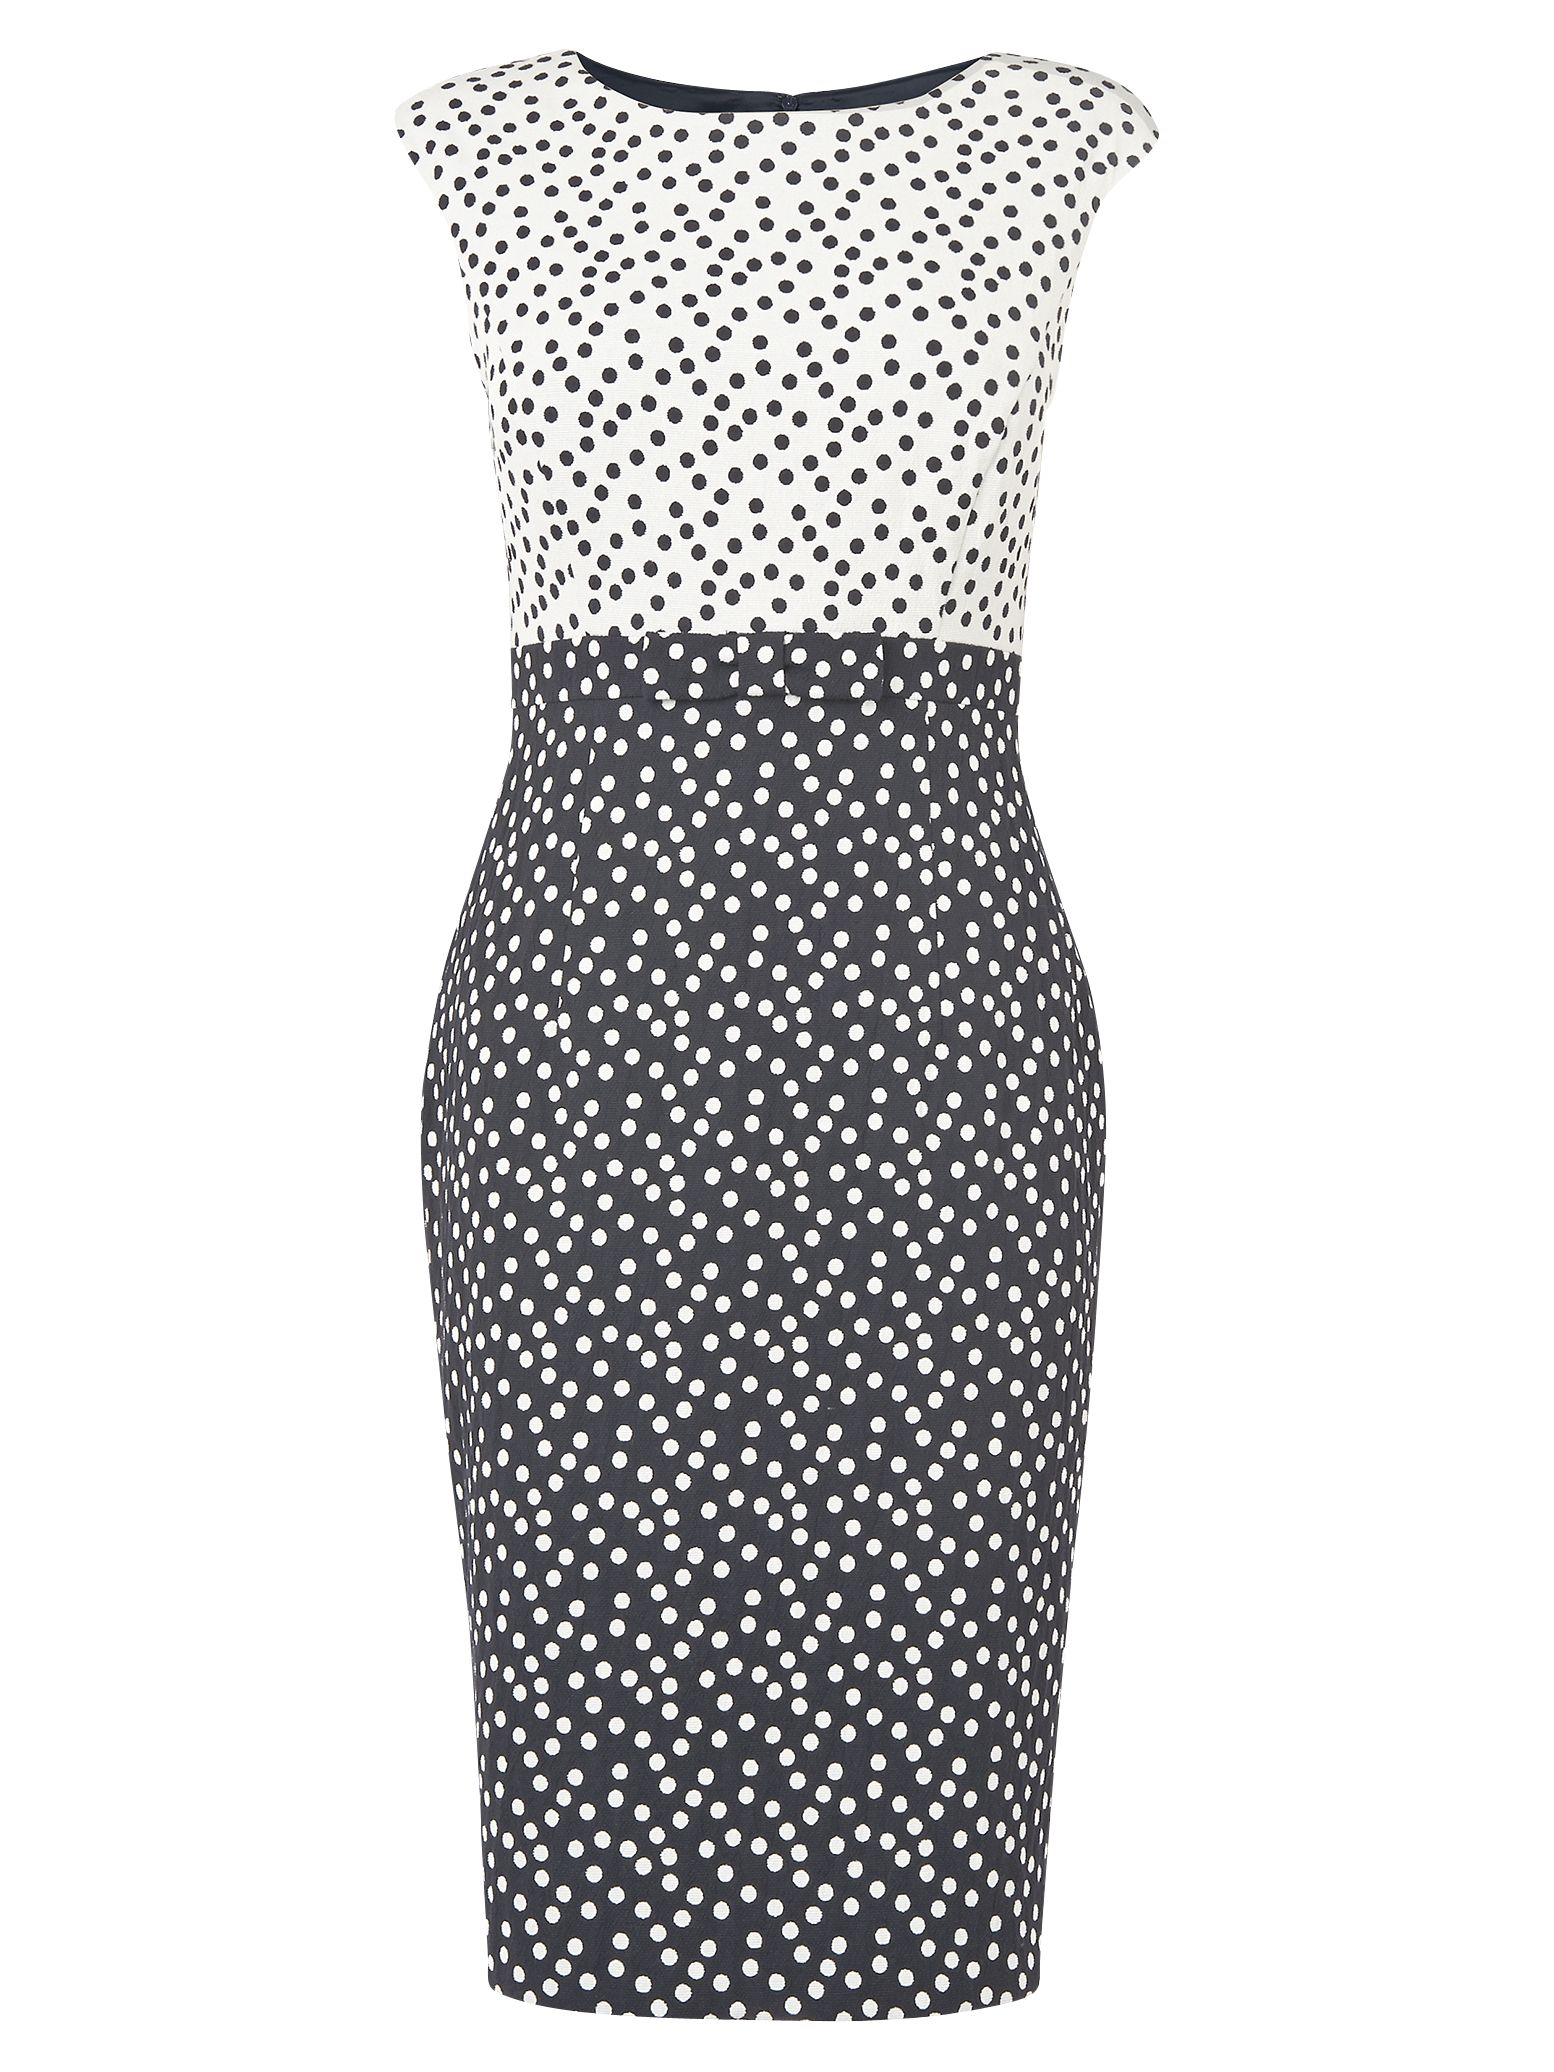 phase eight marcella spotty dress navy/cream, phase, eight, marcella, spotty, dress, navy/cream, phase eight, 16|10|18, women, womens dresses, special offers, womenswear offers, 20% off full price phase eight, womens dresses offers, latest reductions, fashion magazine, brands l-z, inactive womenswear, 1852116